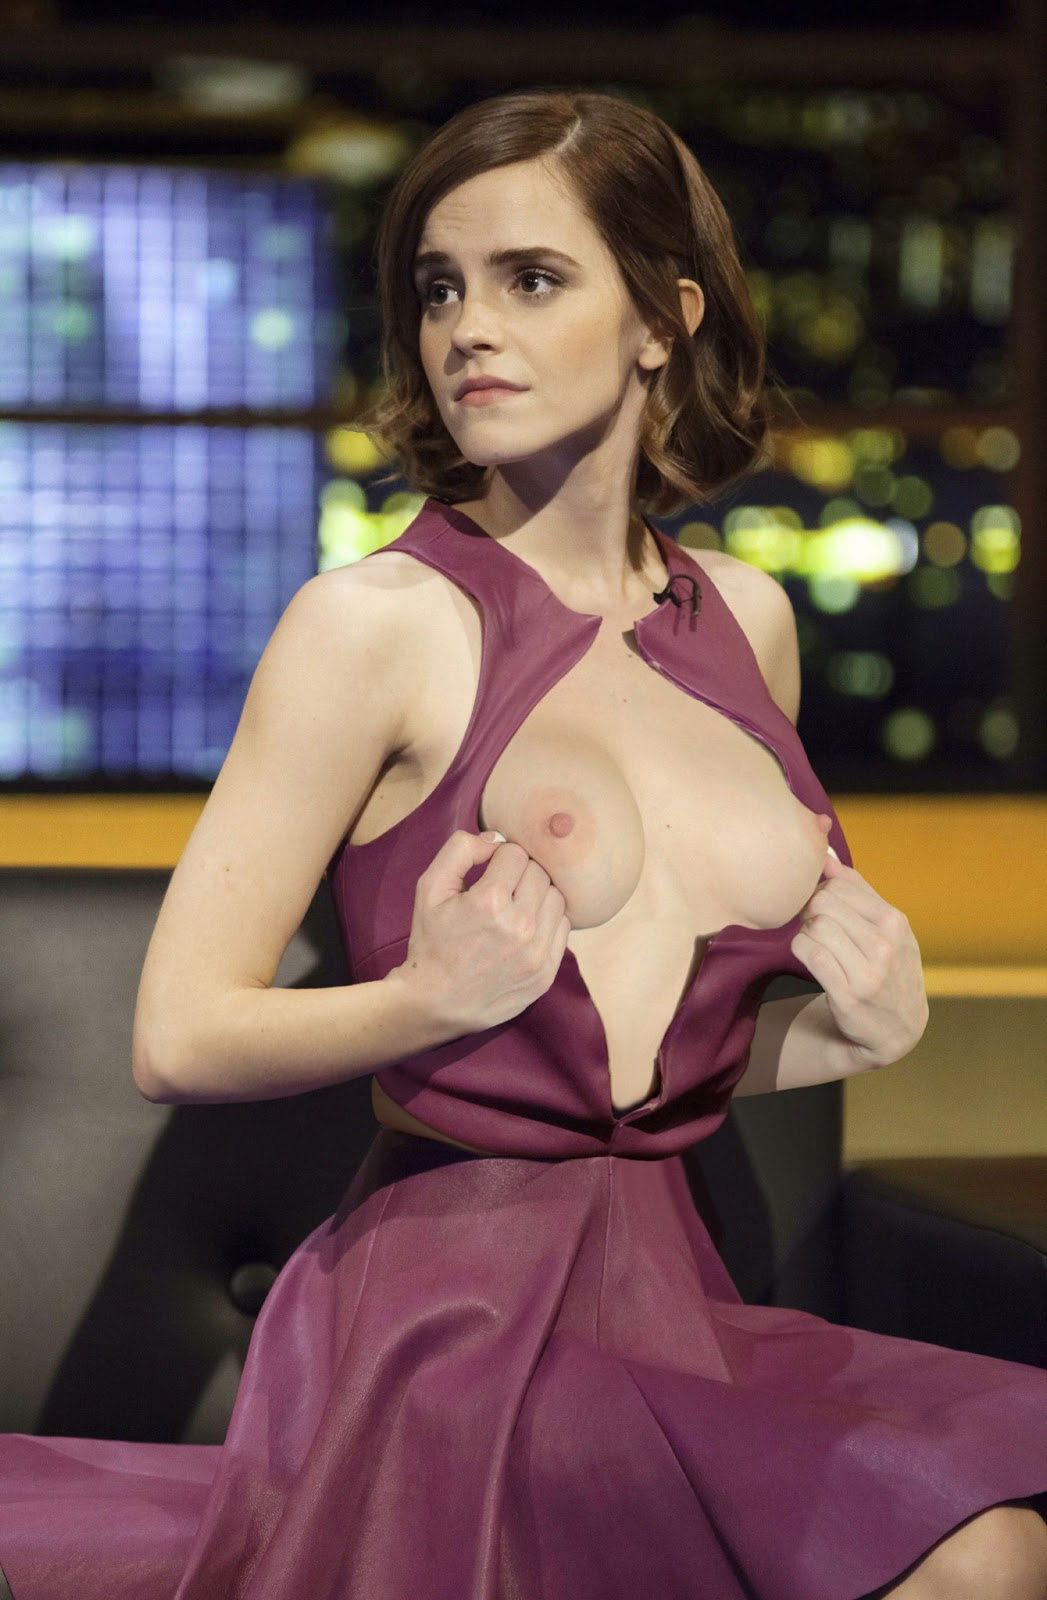 Emma Watson Nude In Tv Show Showing Her Boobs  Pussy Fake -5995